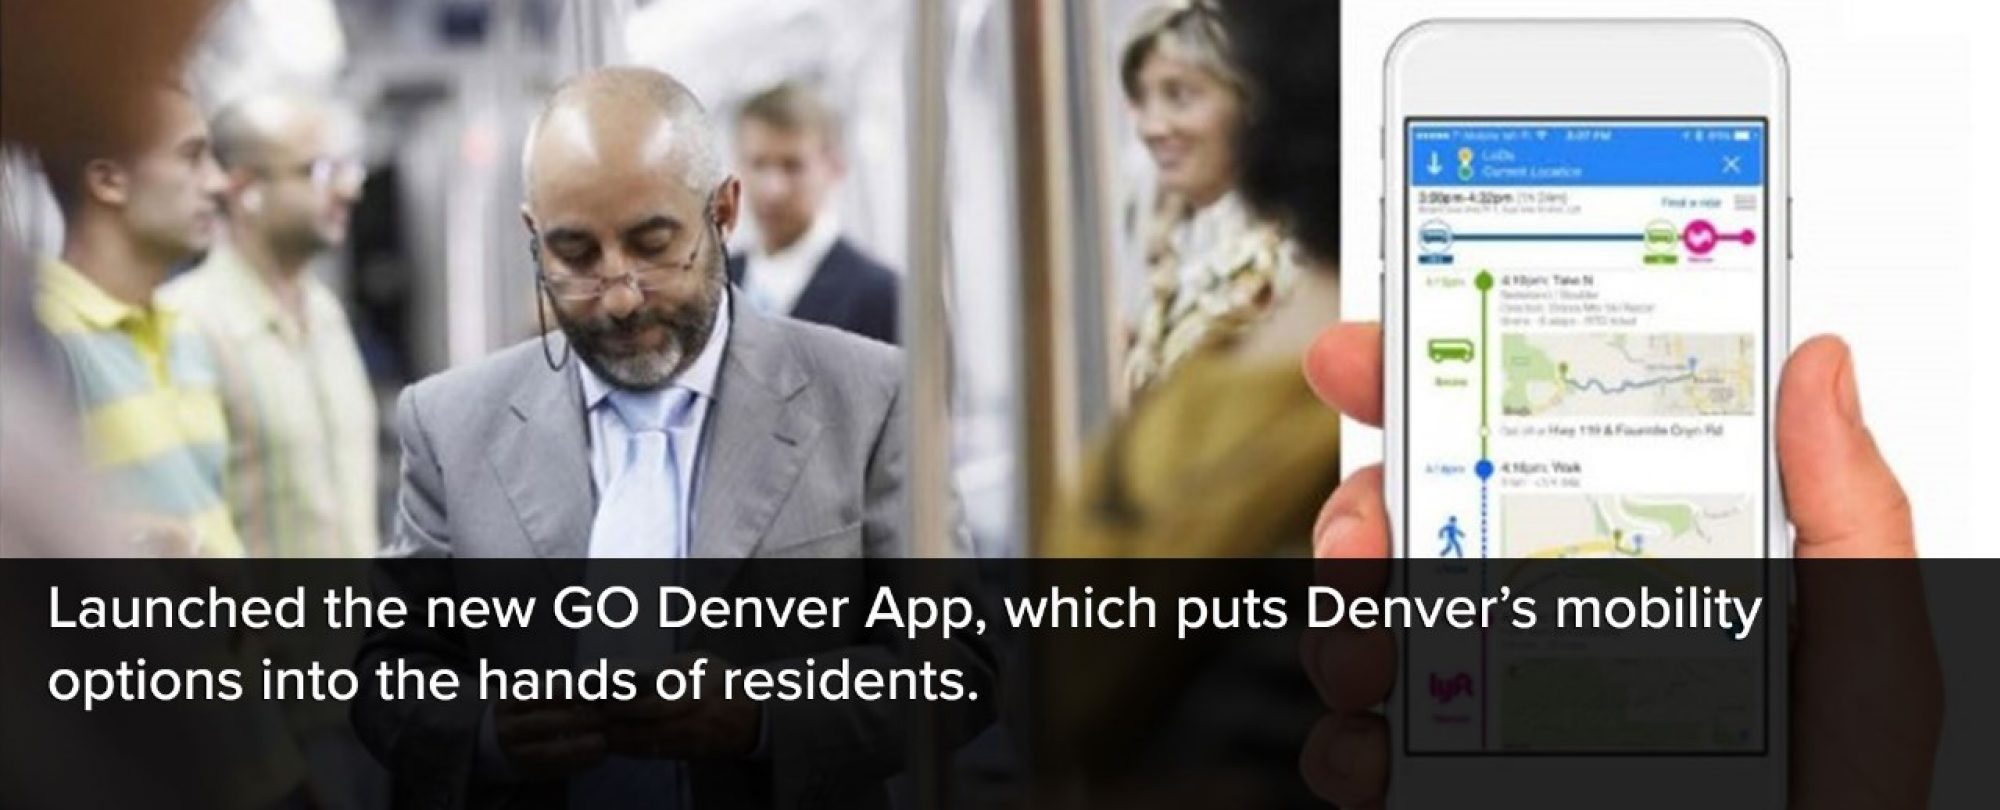 Photo advertisement for the GODenver app. Denver launched the new GODenver App, which puts Denver's mobility options into the hands of residents.